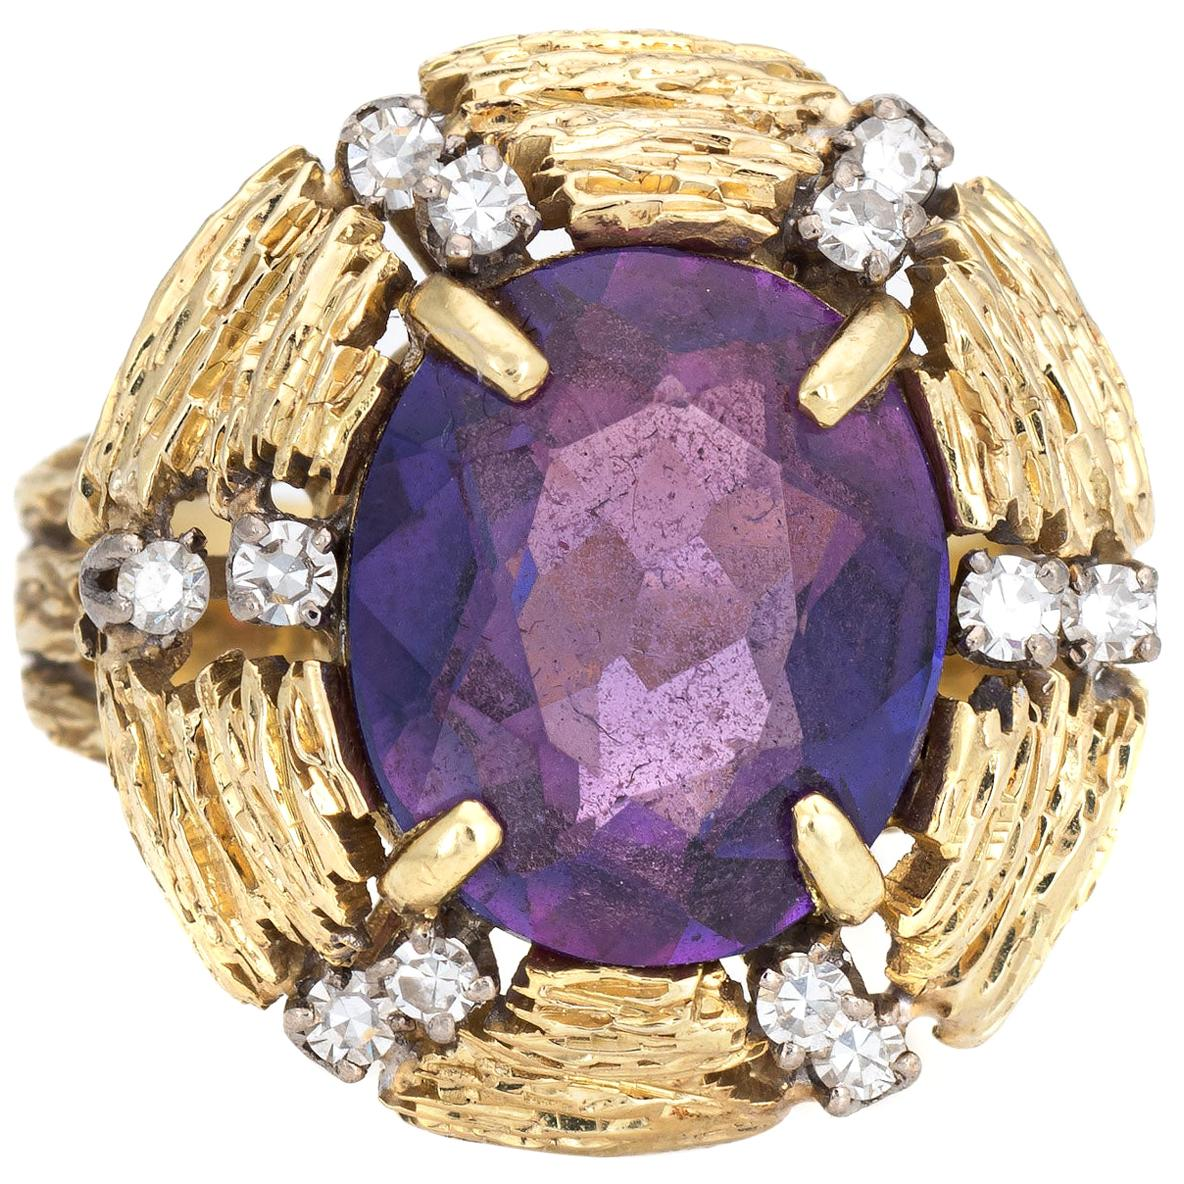 Amethyst Diamond Cocktail Ring Vintage 18 Karat Yellow Gold Estate Fine Jewelry